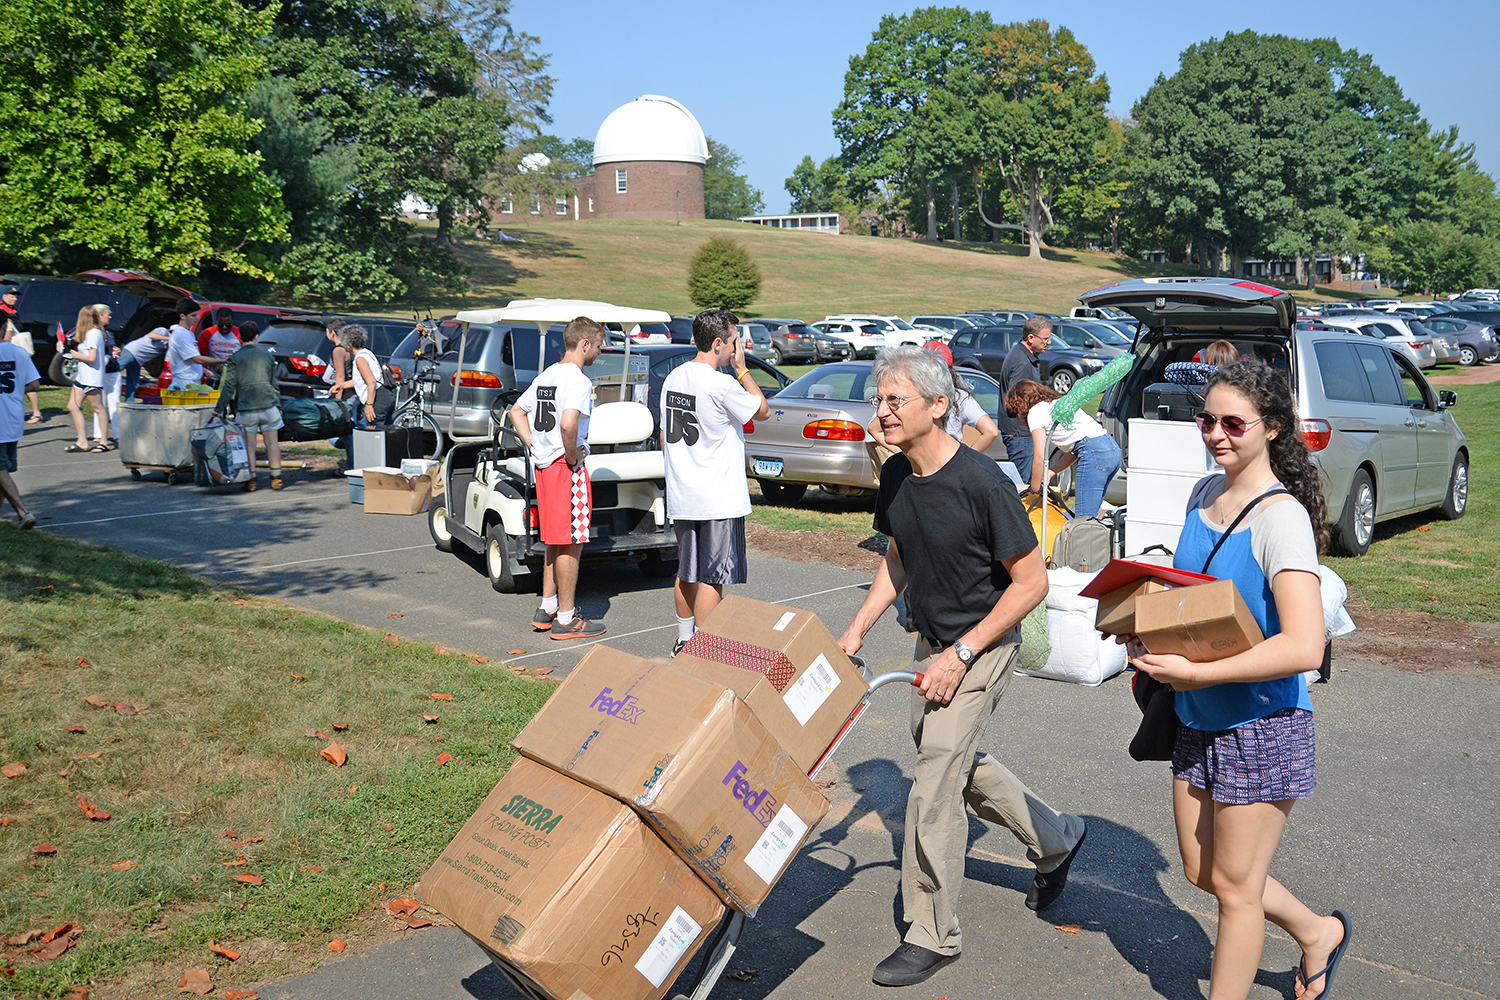 Hundreds of families and friends helped students move into their student residences on Arrival Day Sept. 2.